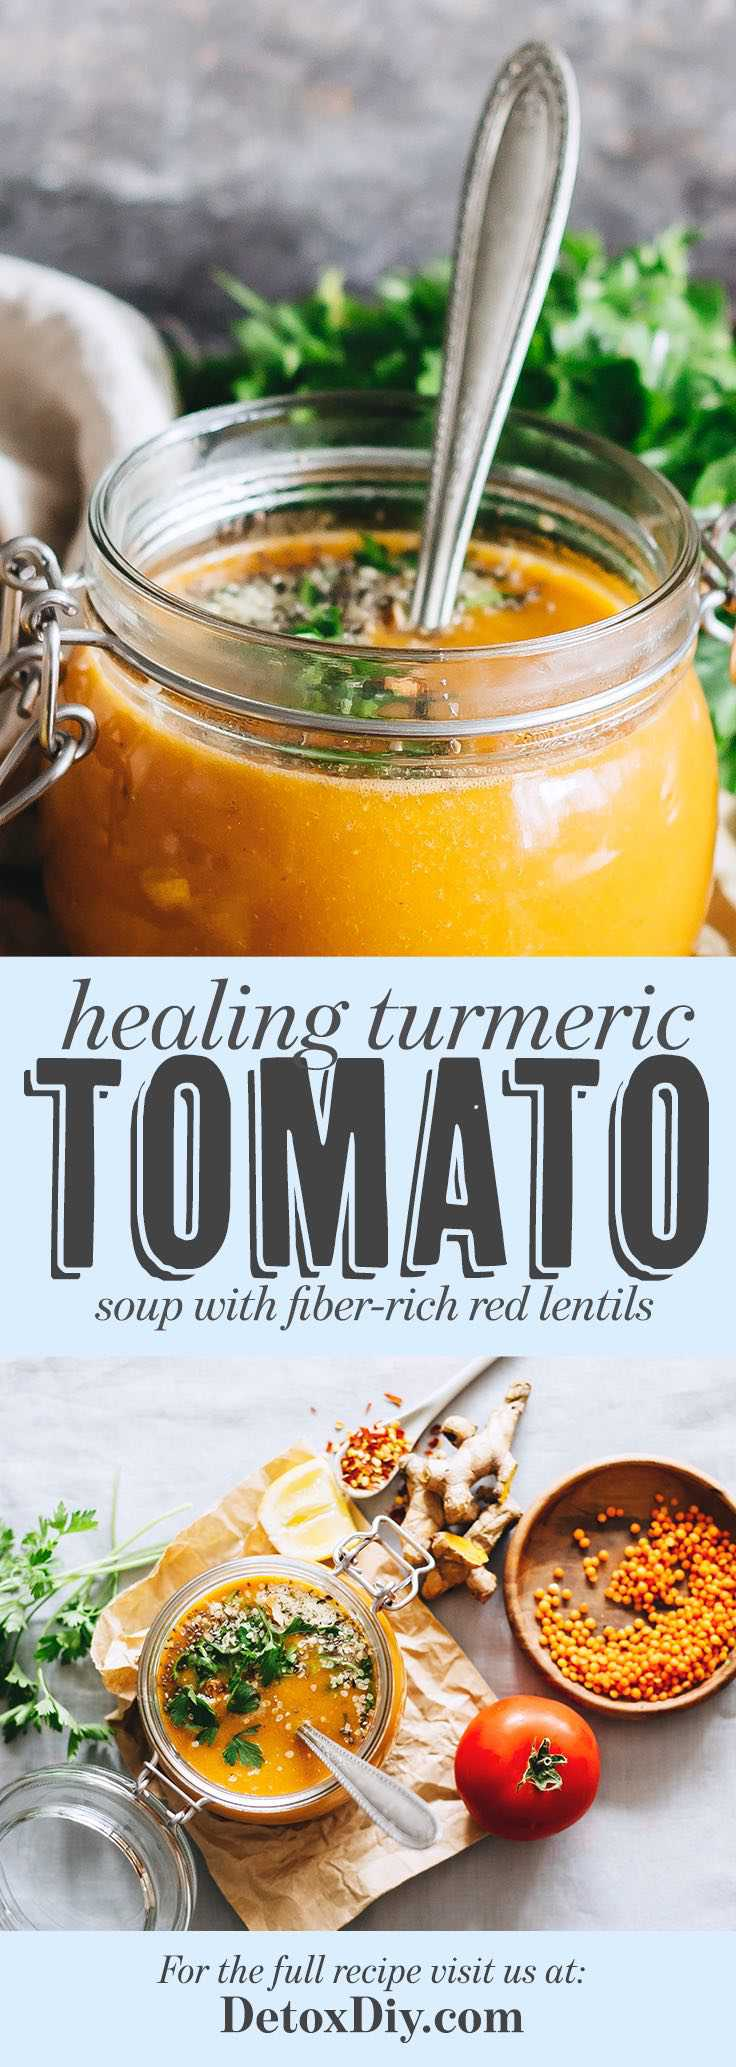 Healing Turmeric Tomato Soup with Red Lentils